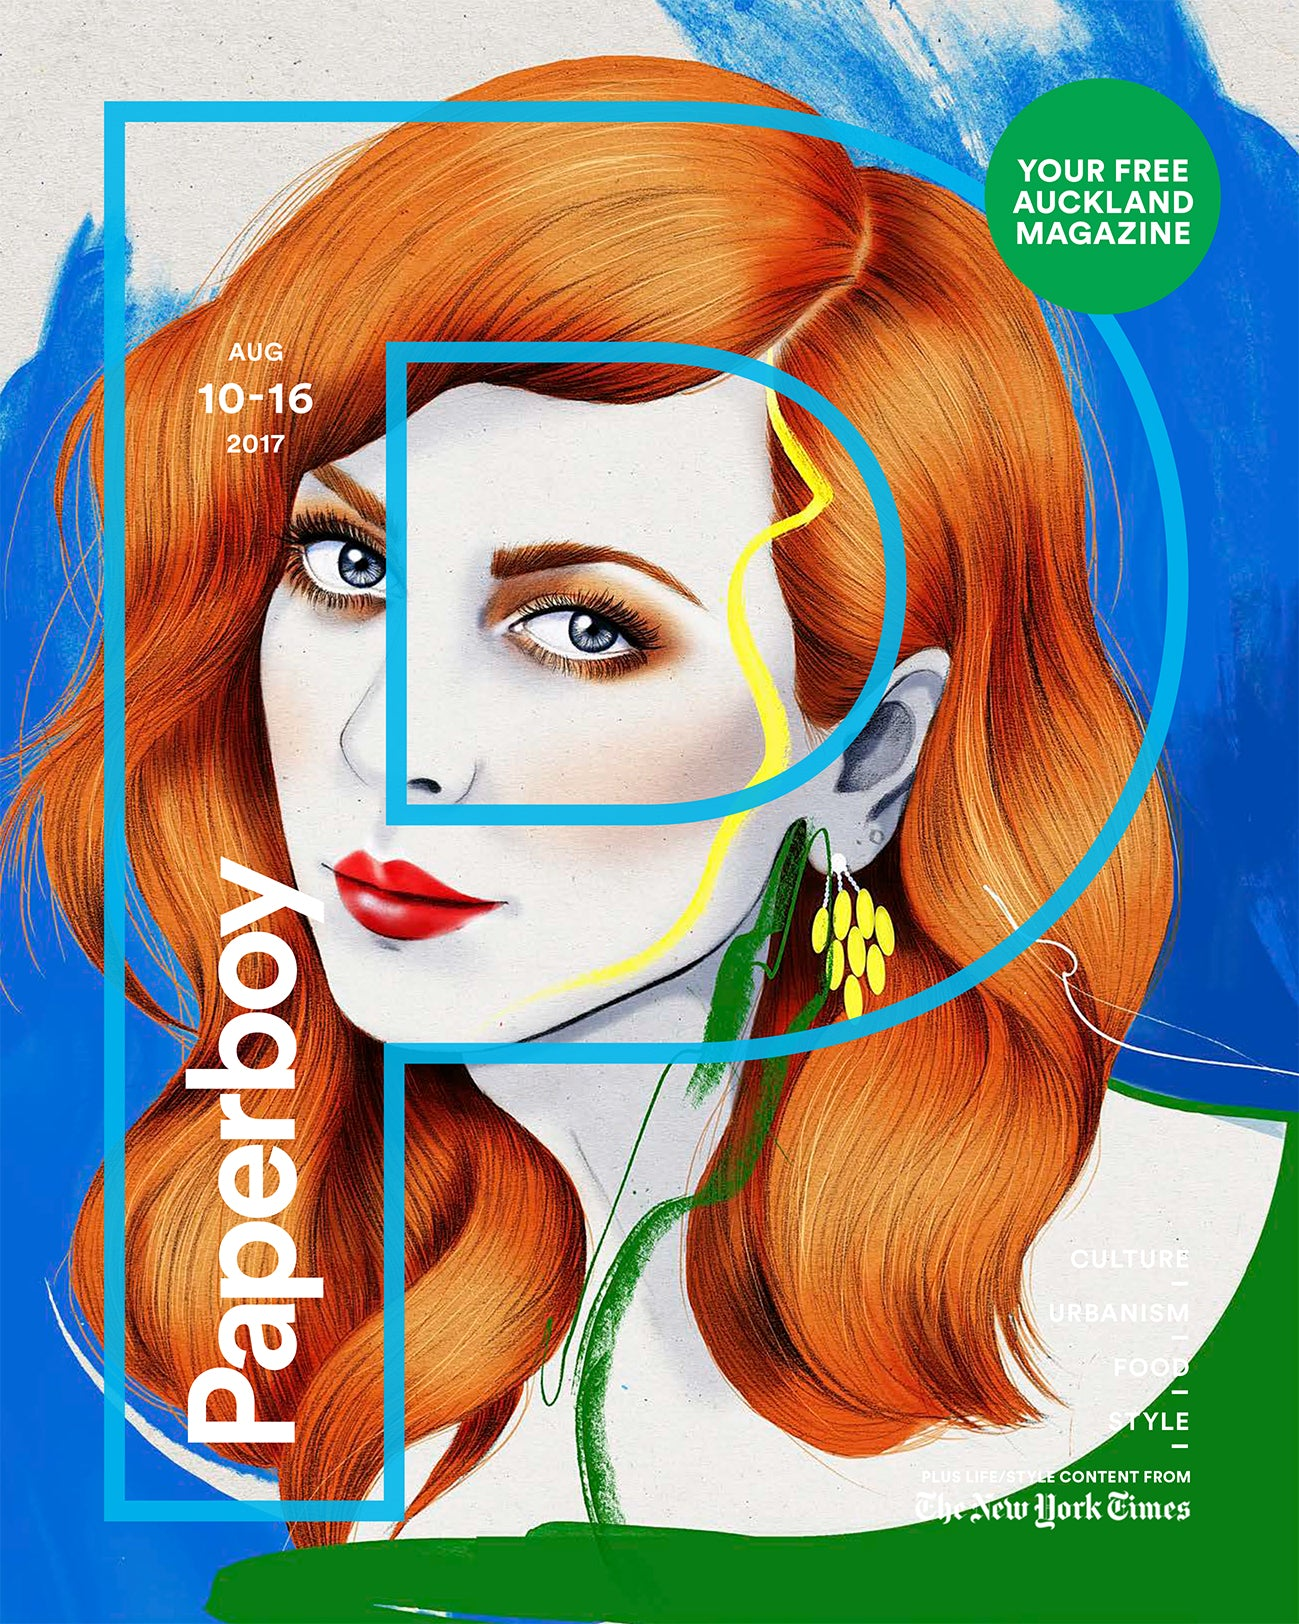 Melbourne Illustrator Kelly Thompson Paperboy Magazine cover self portrait and article